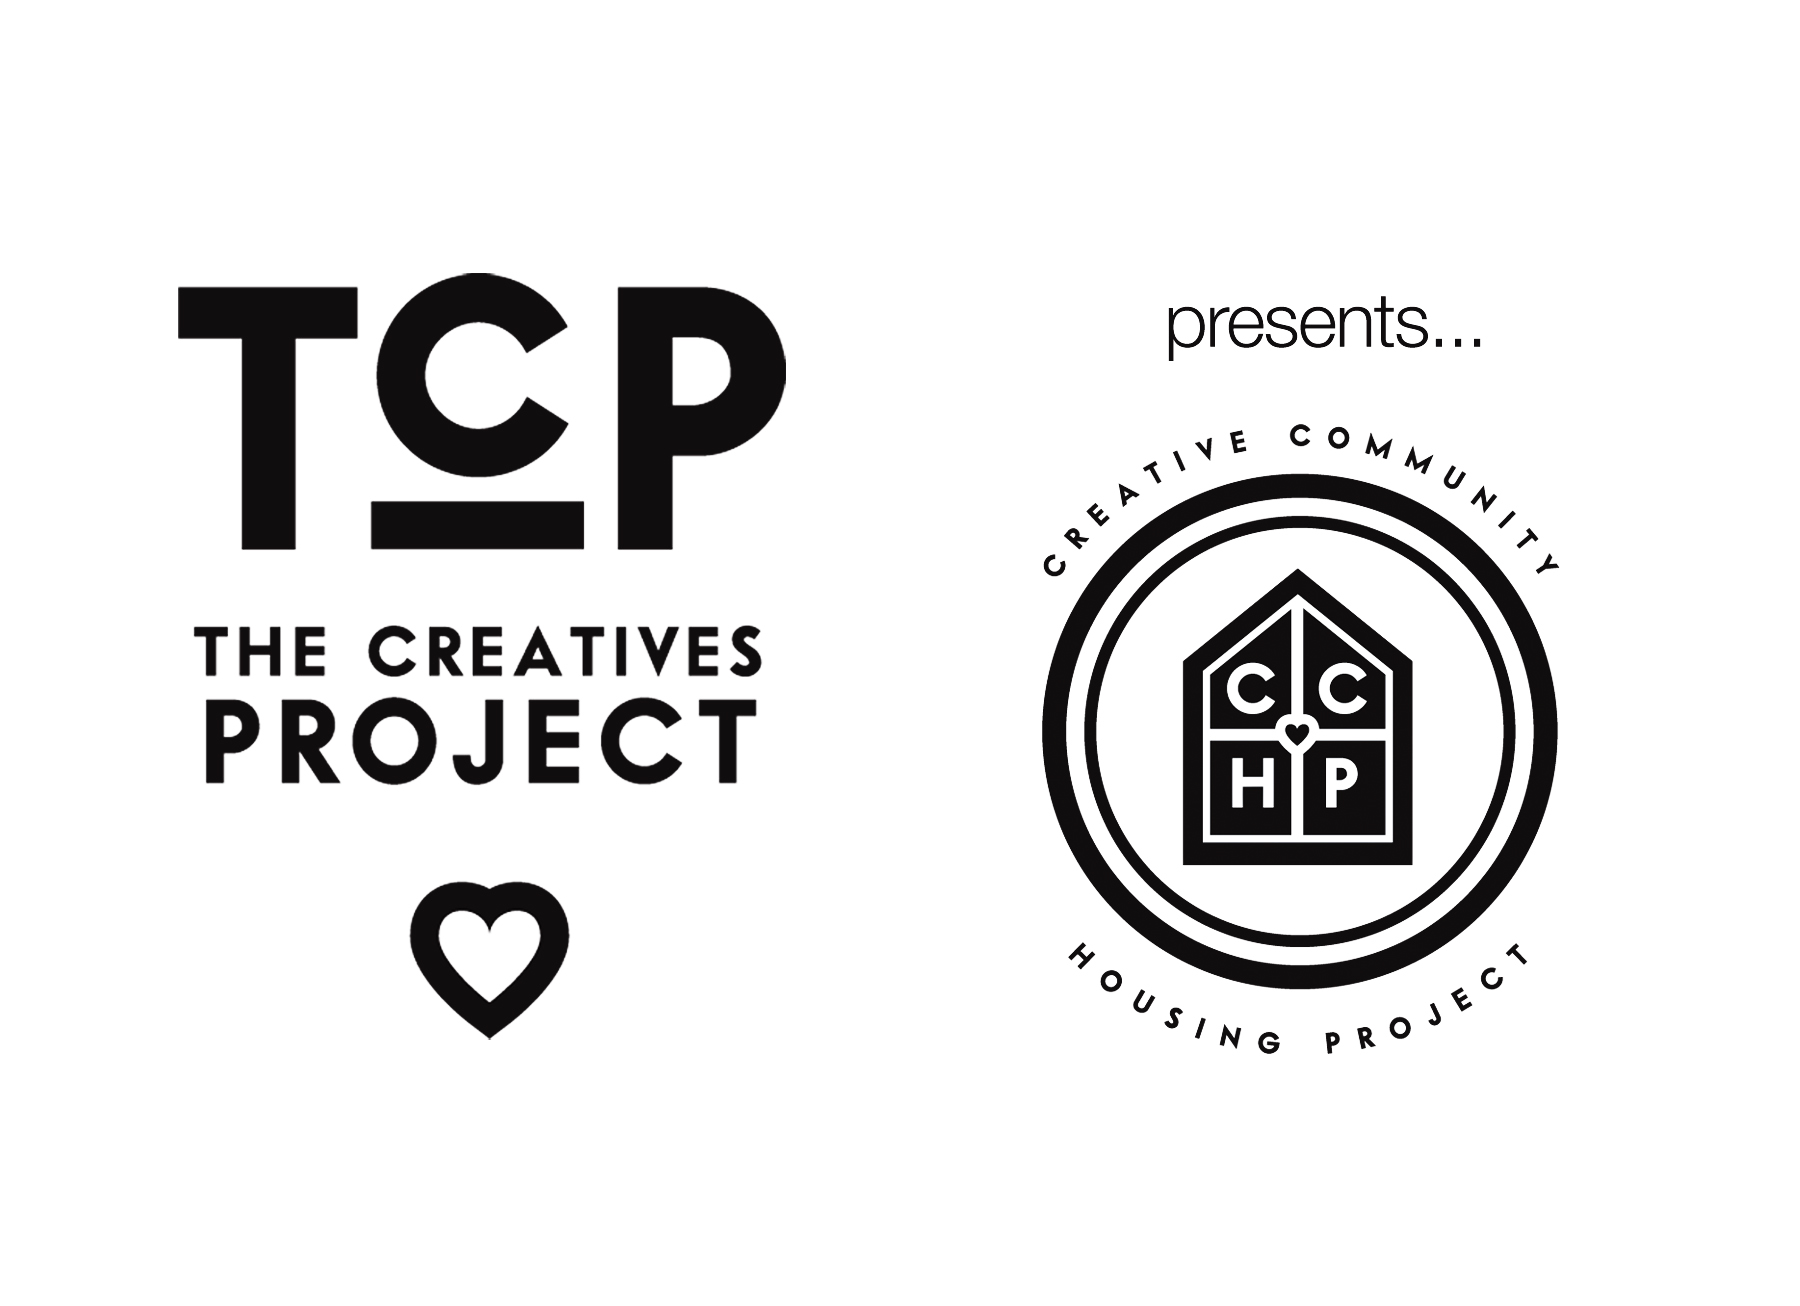 TCP presents CCHP 2011 Artists in Residency